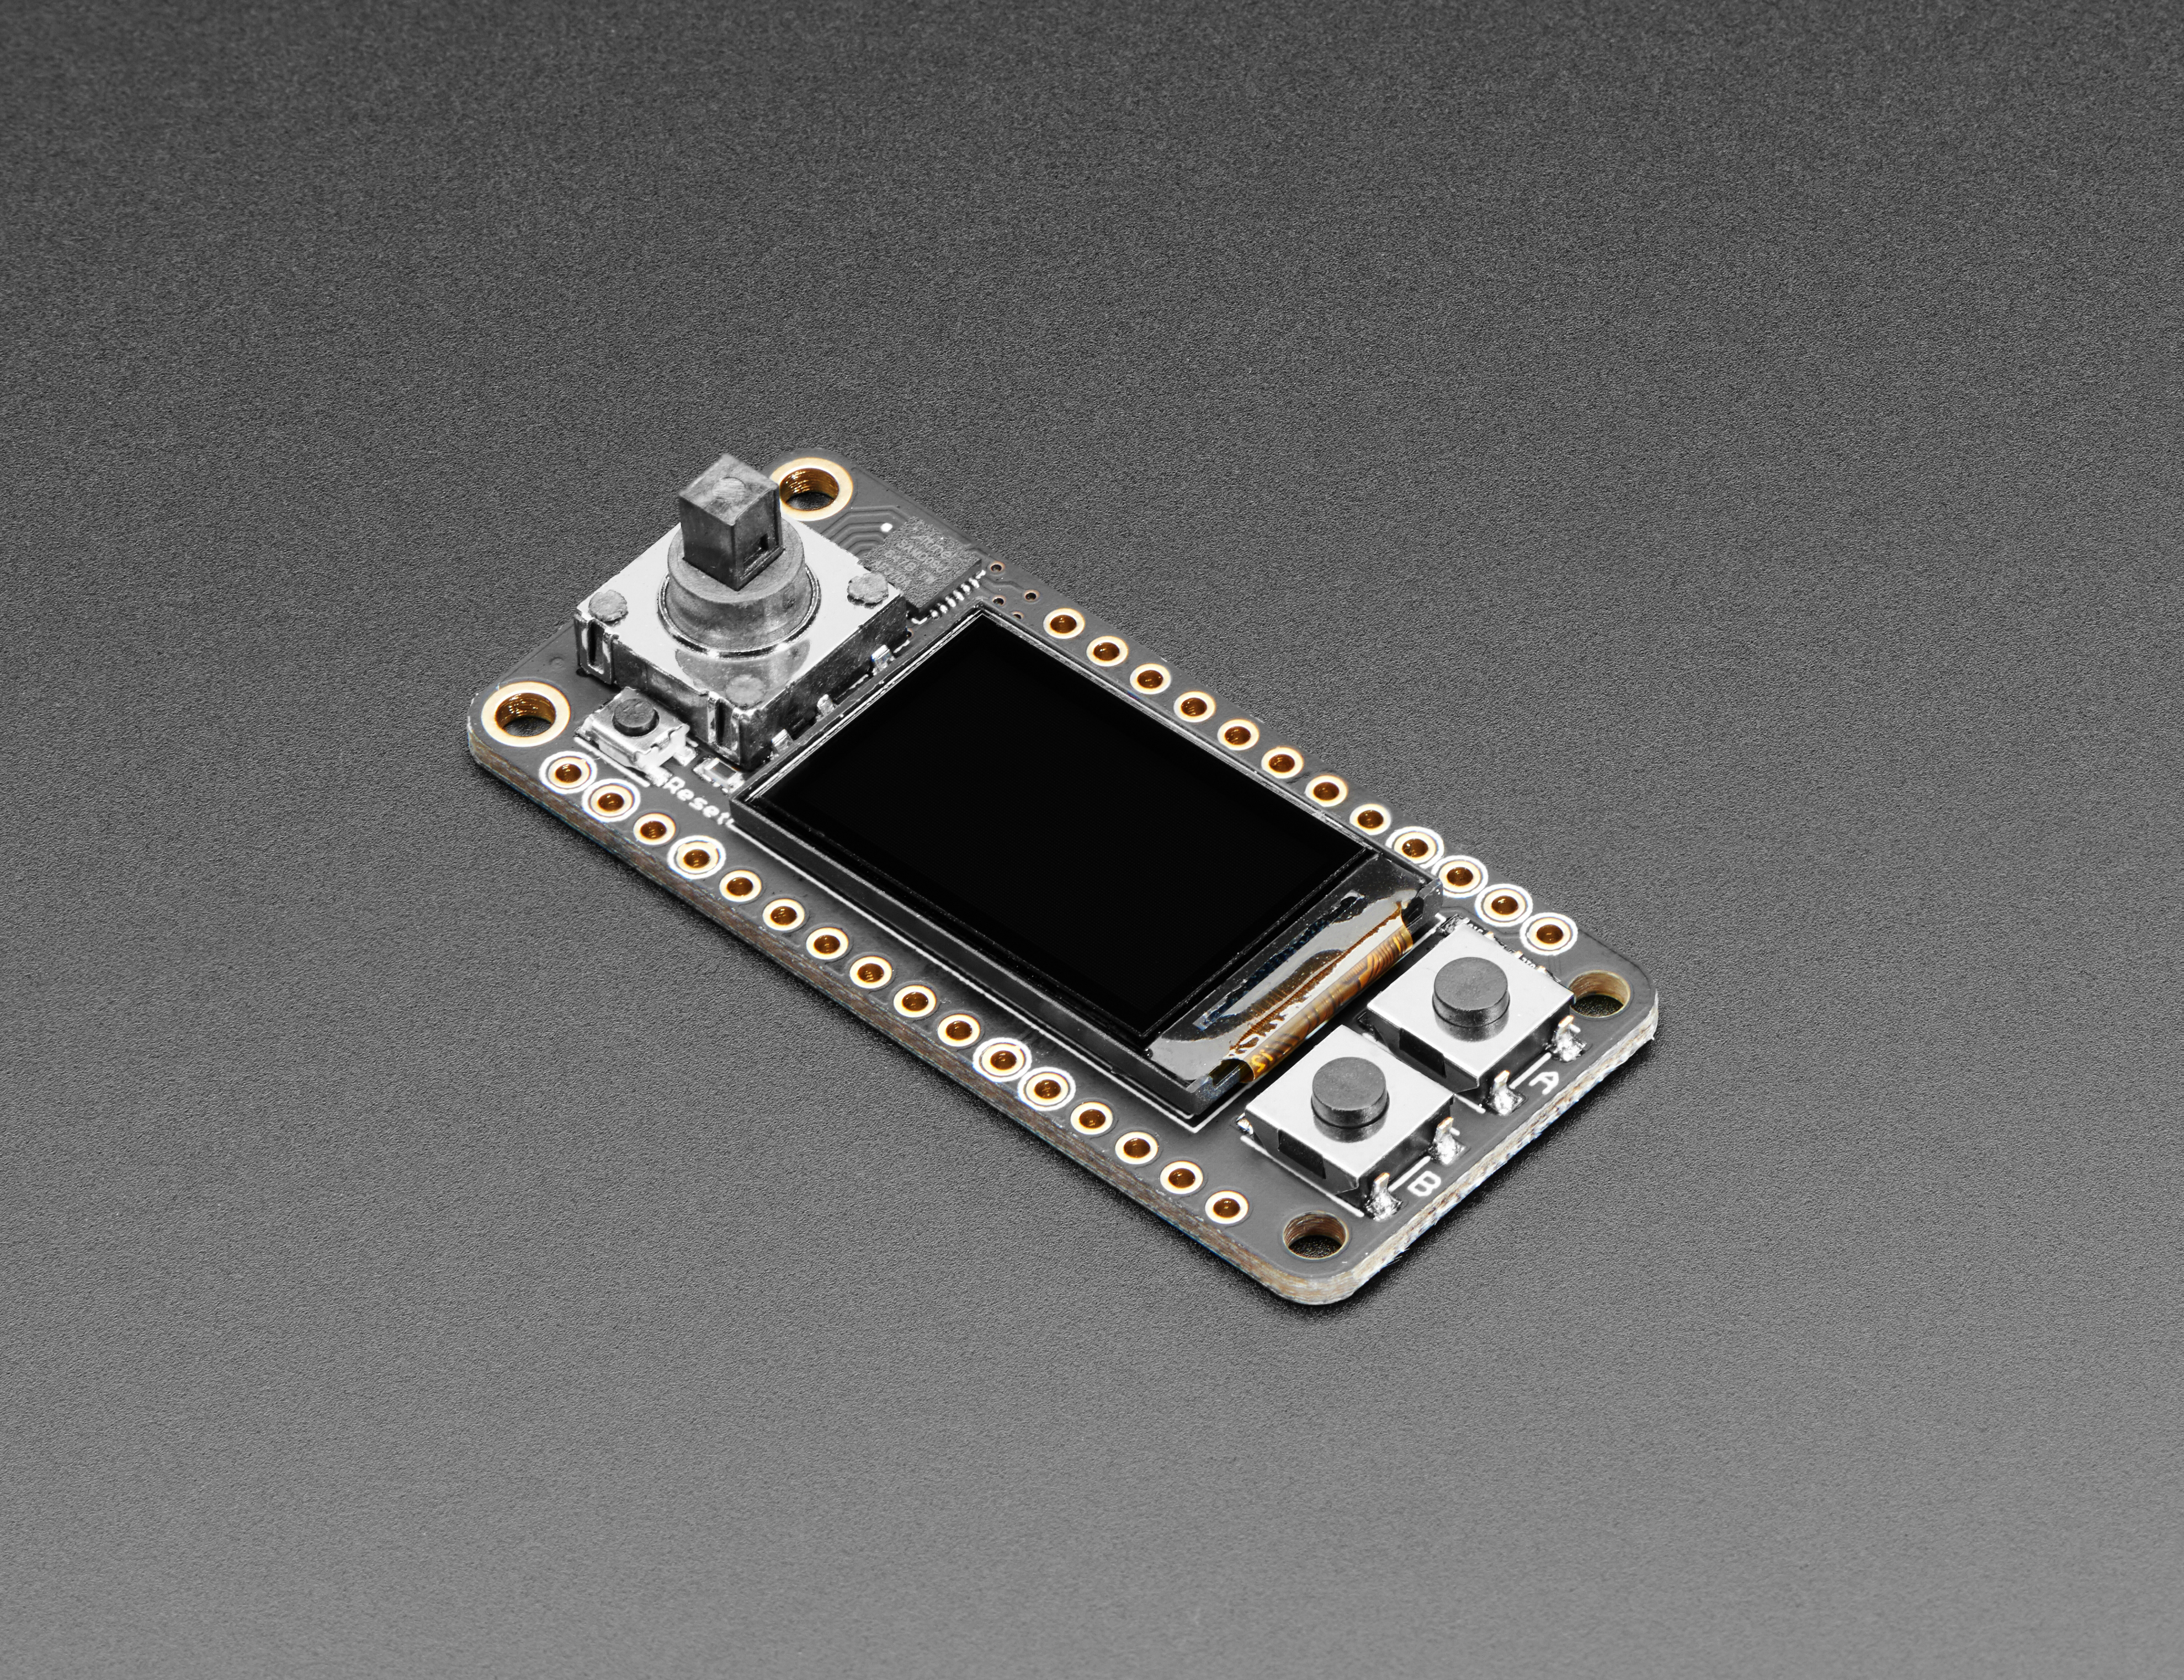 adafruit_products_3321_iso_ORIG_2018_07.jpg